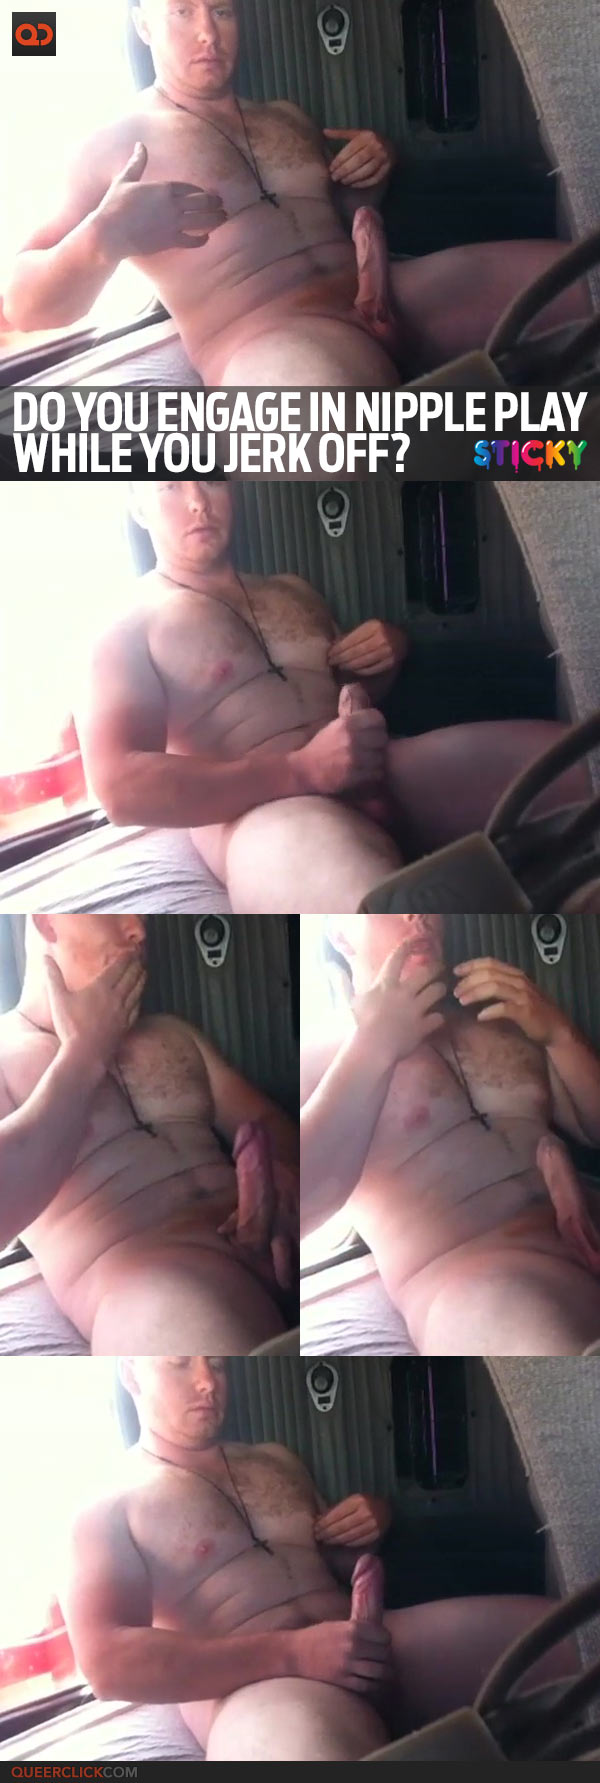 qc-sticky-nipple_play_while_jerking_off-teaser